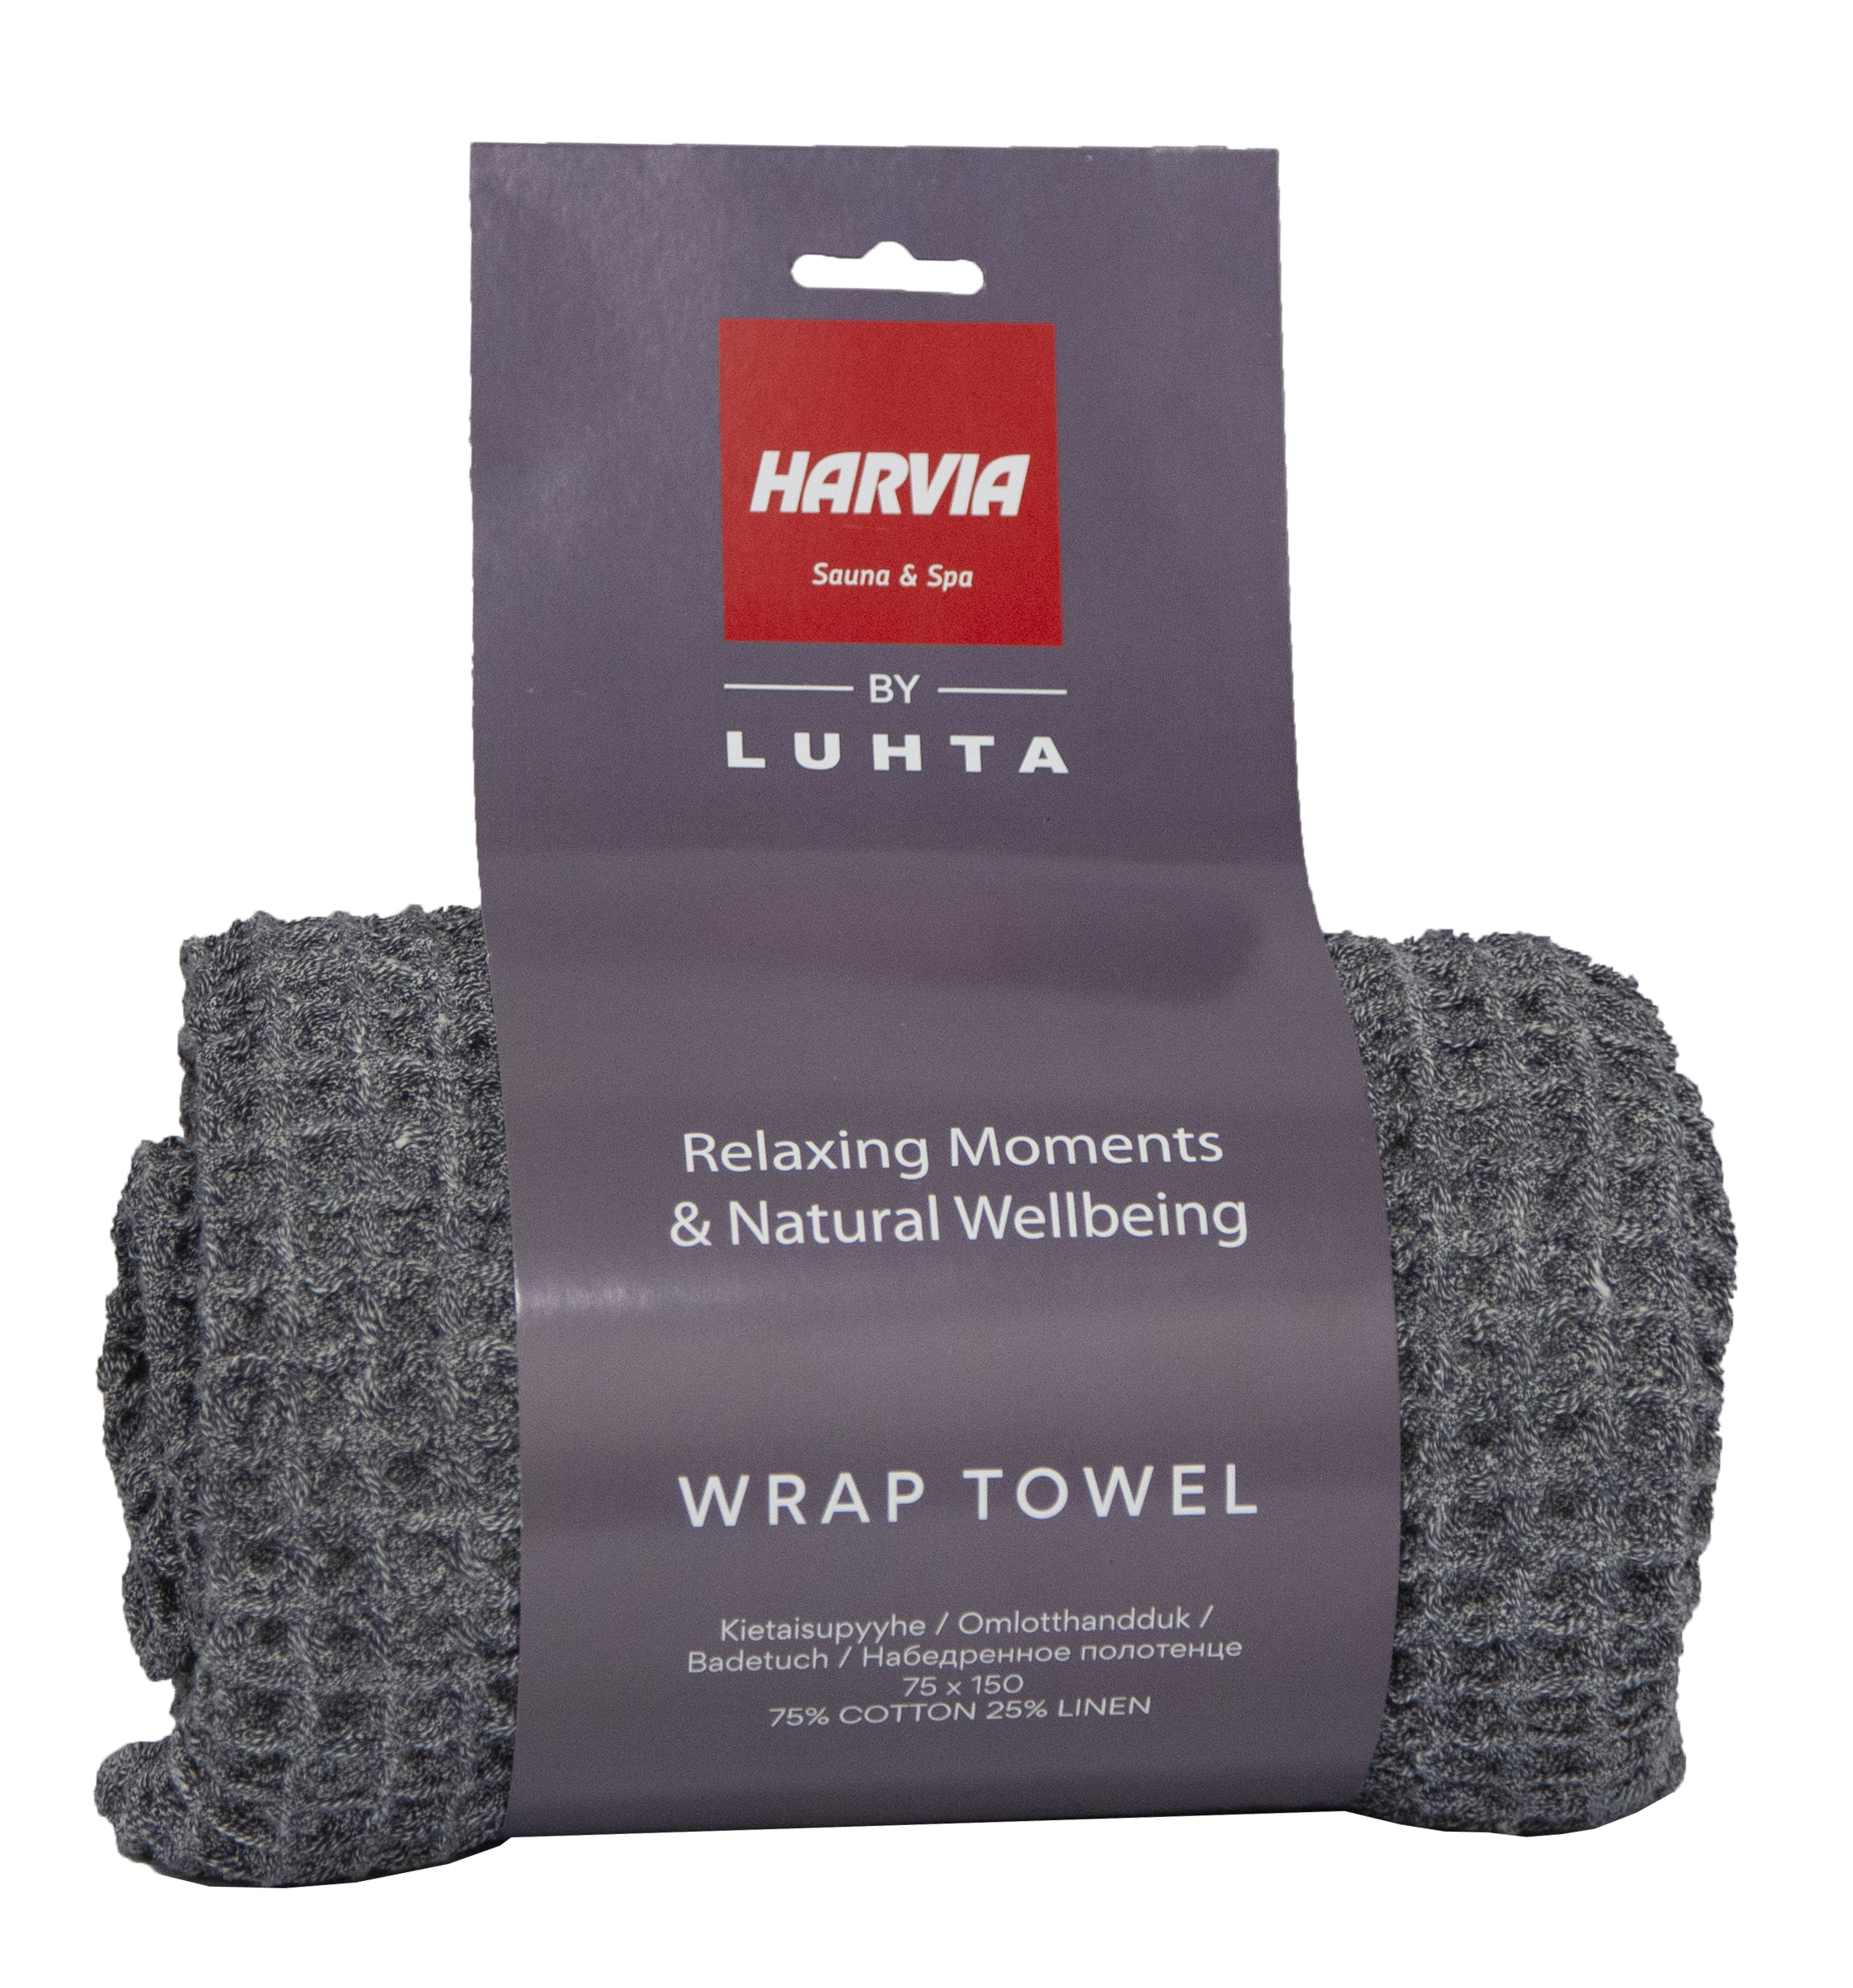 Harvia by Luhta wraptowel